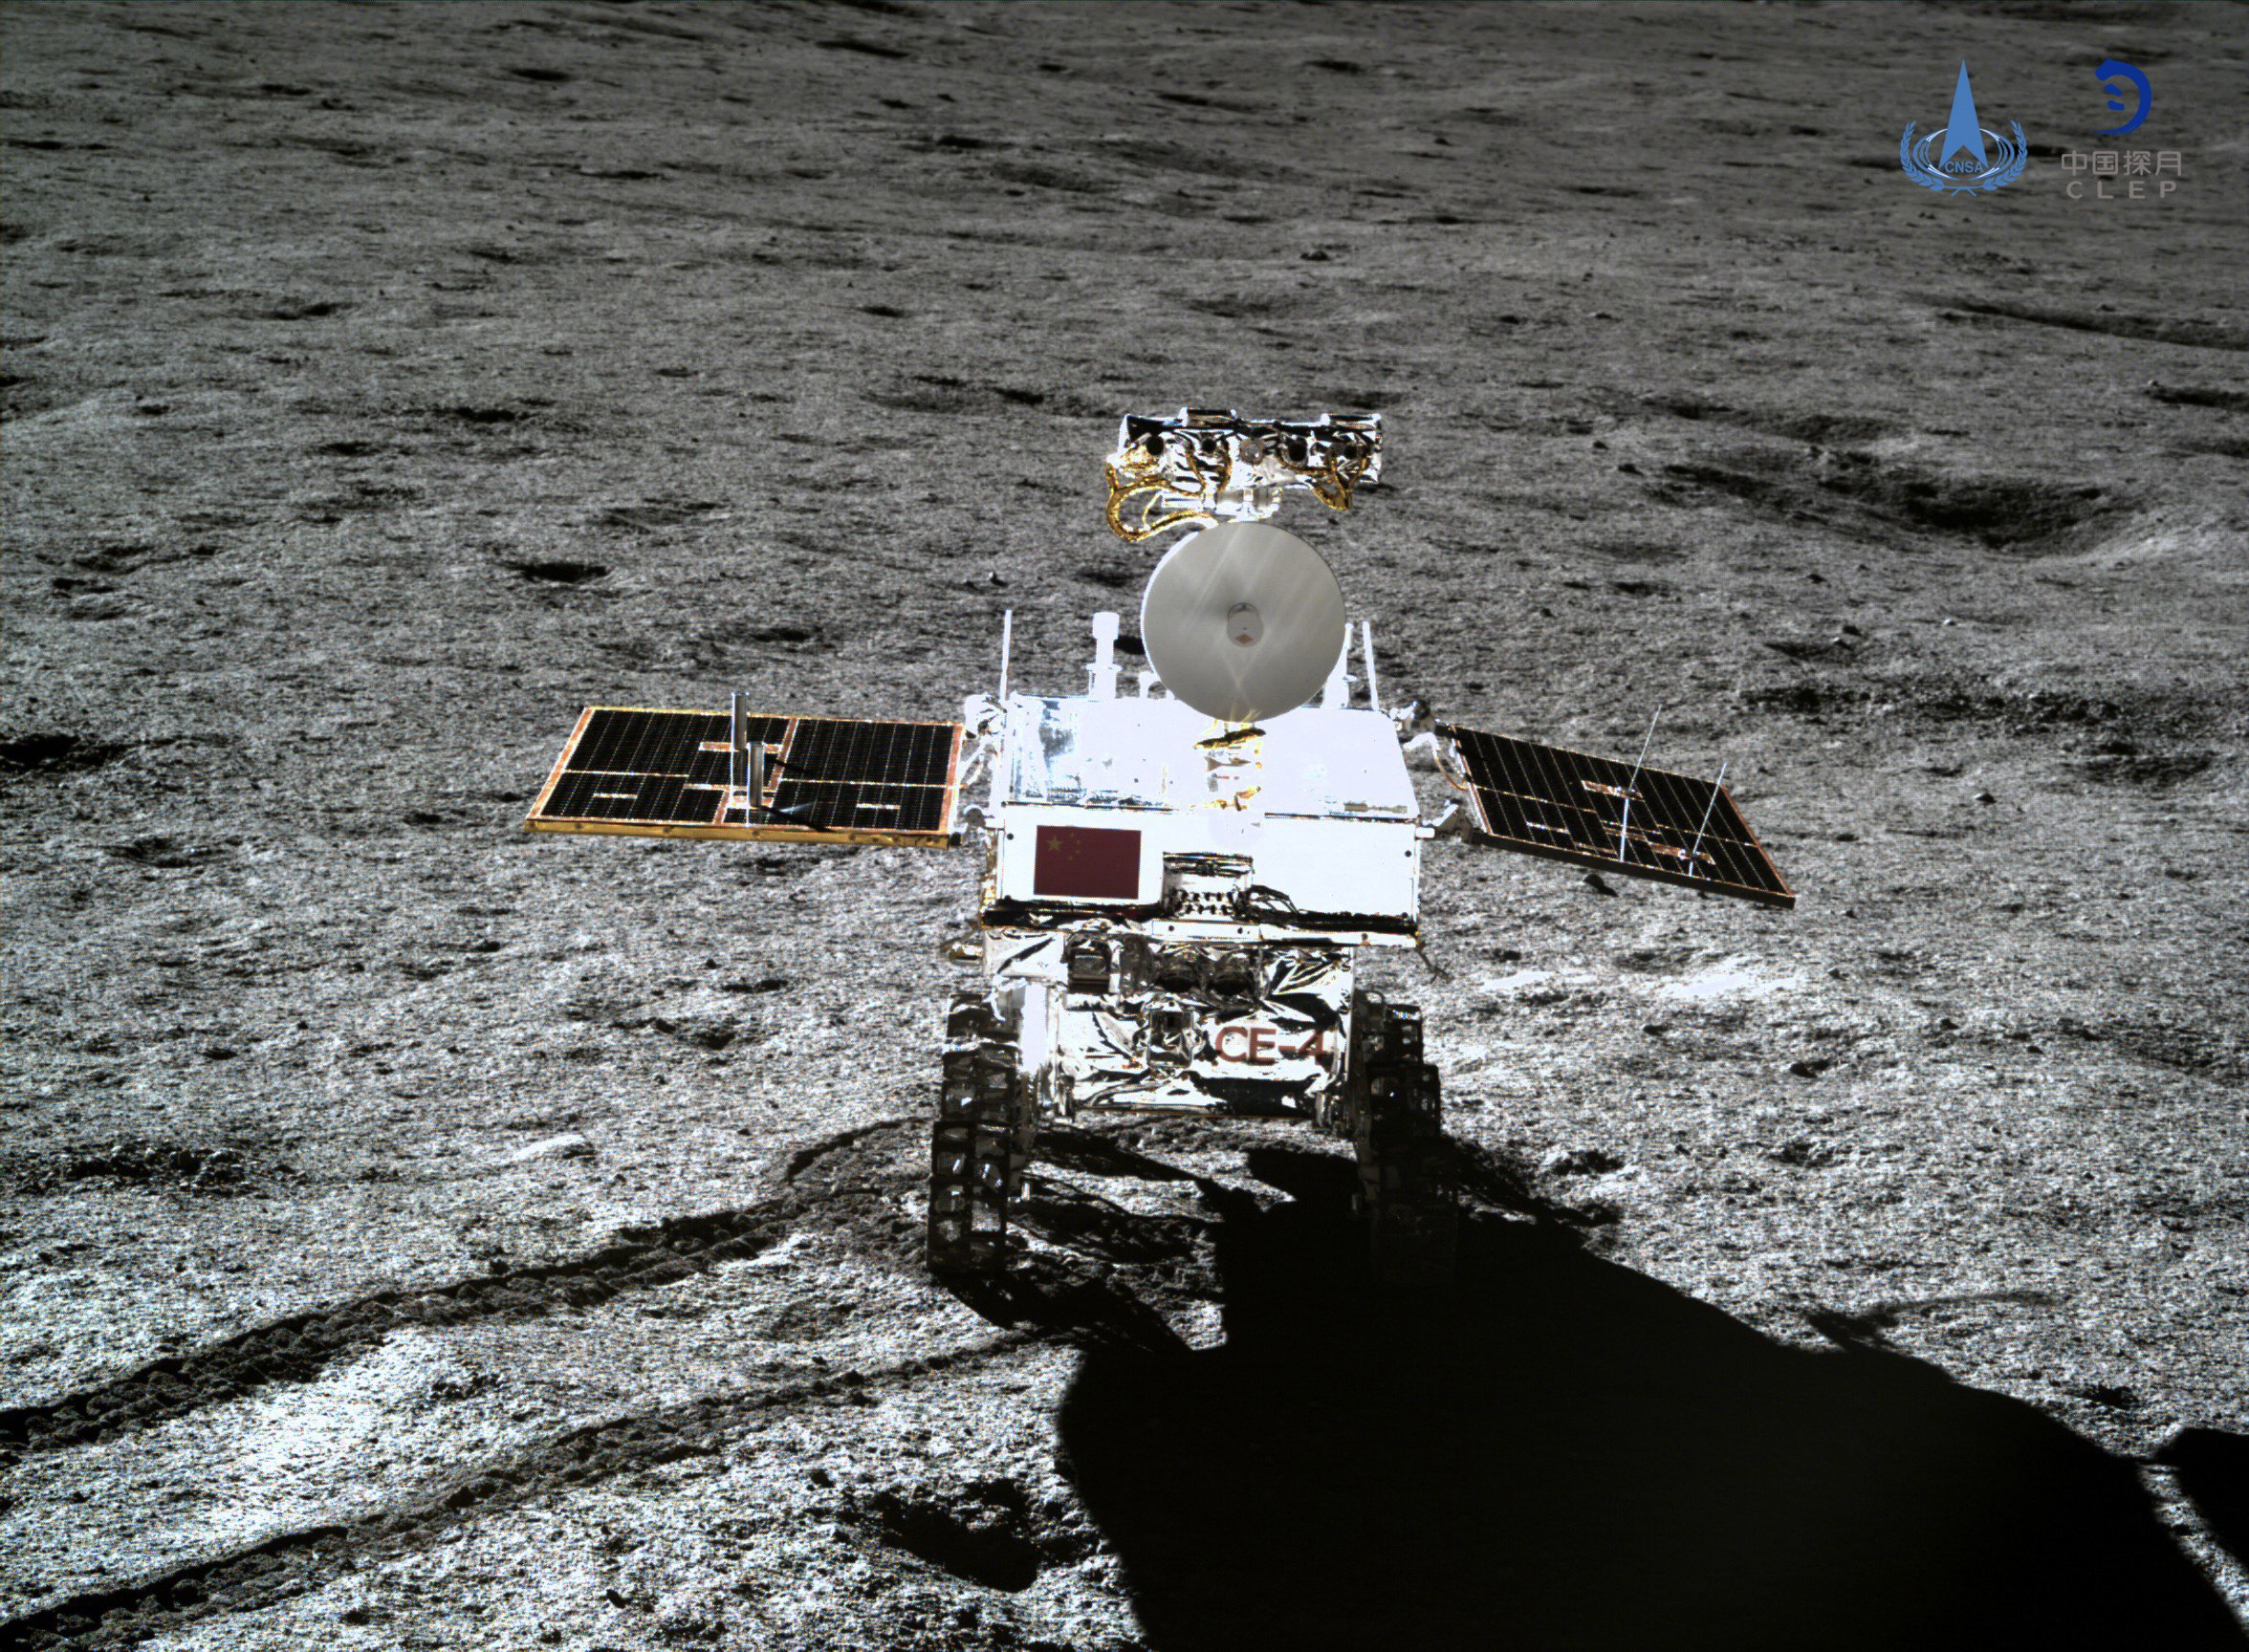 China reveals more pictures of the far side of the moon